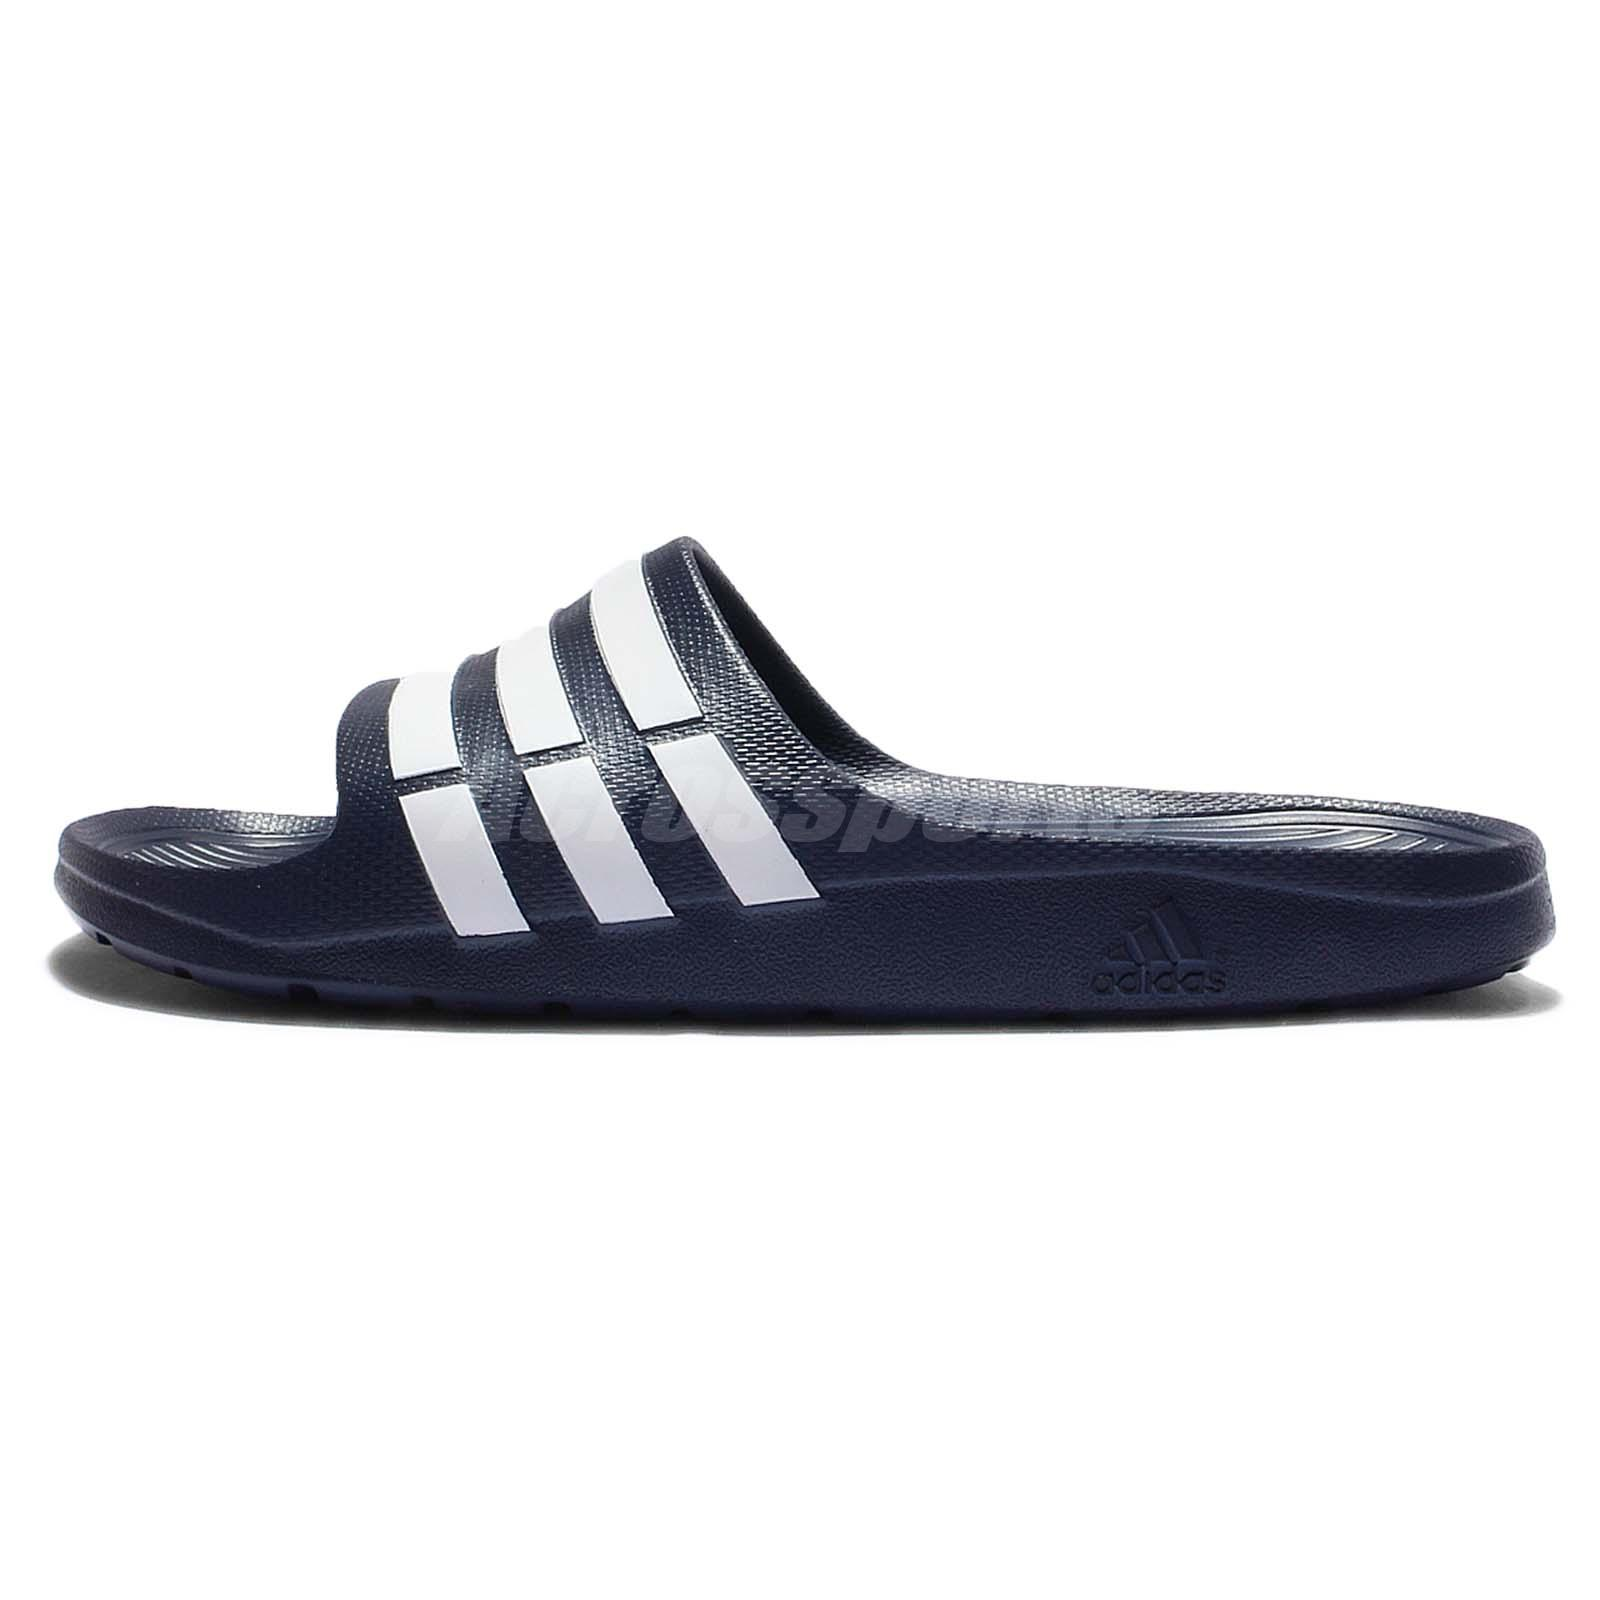 save off bab57 6d7cf adidas duramo slide slippers